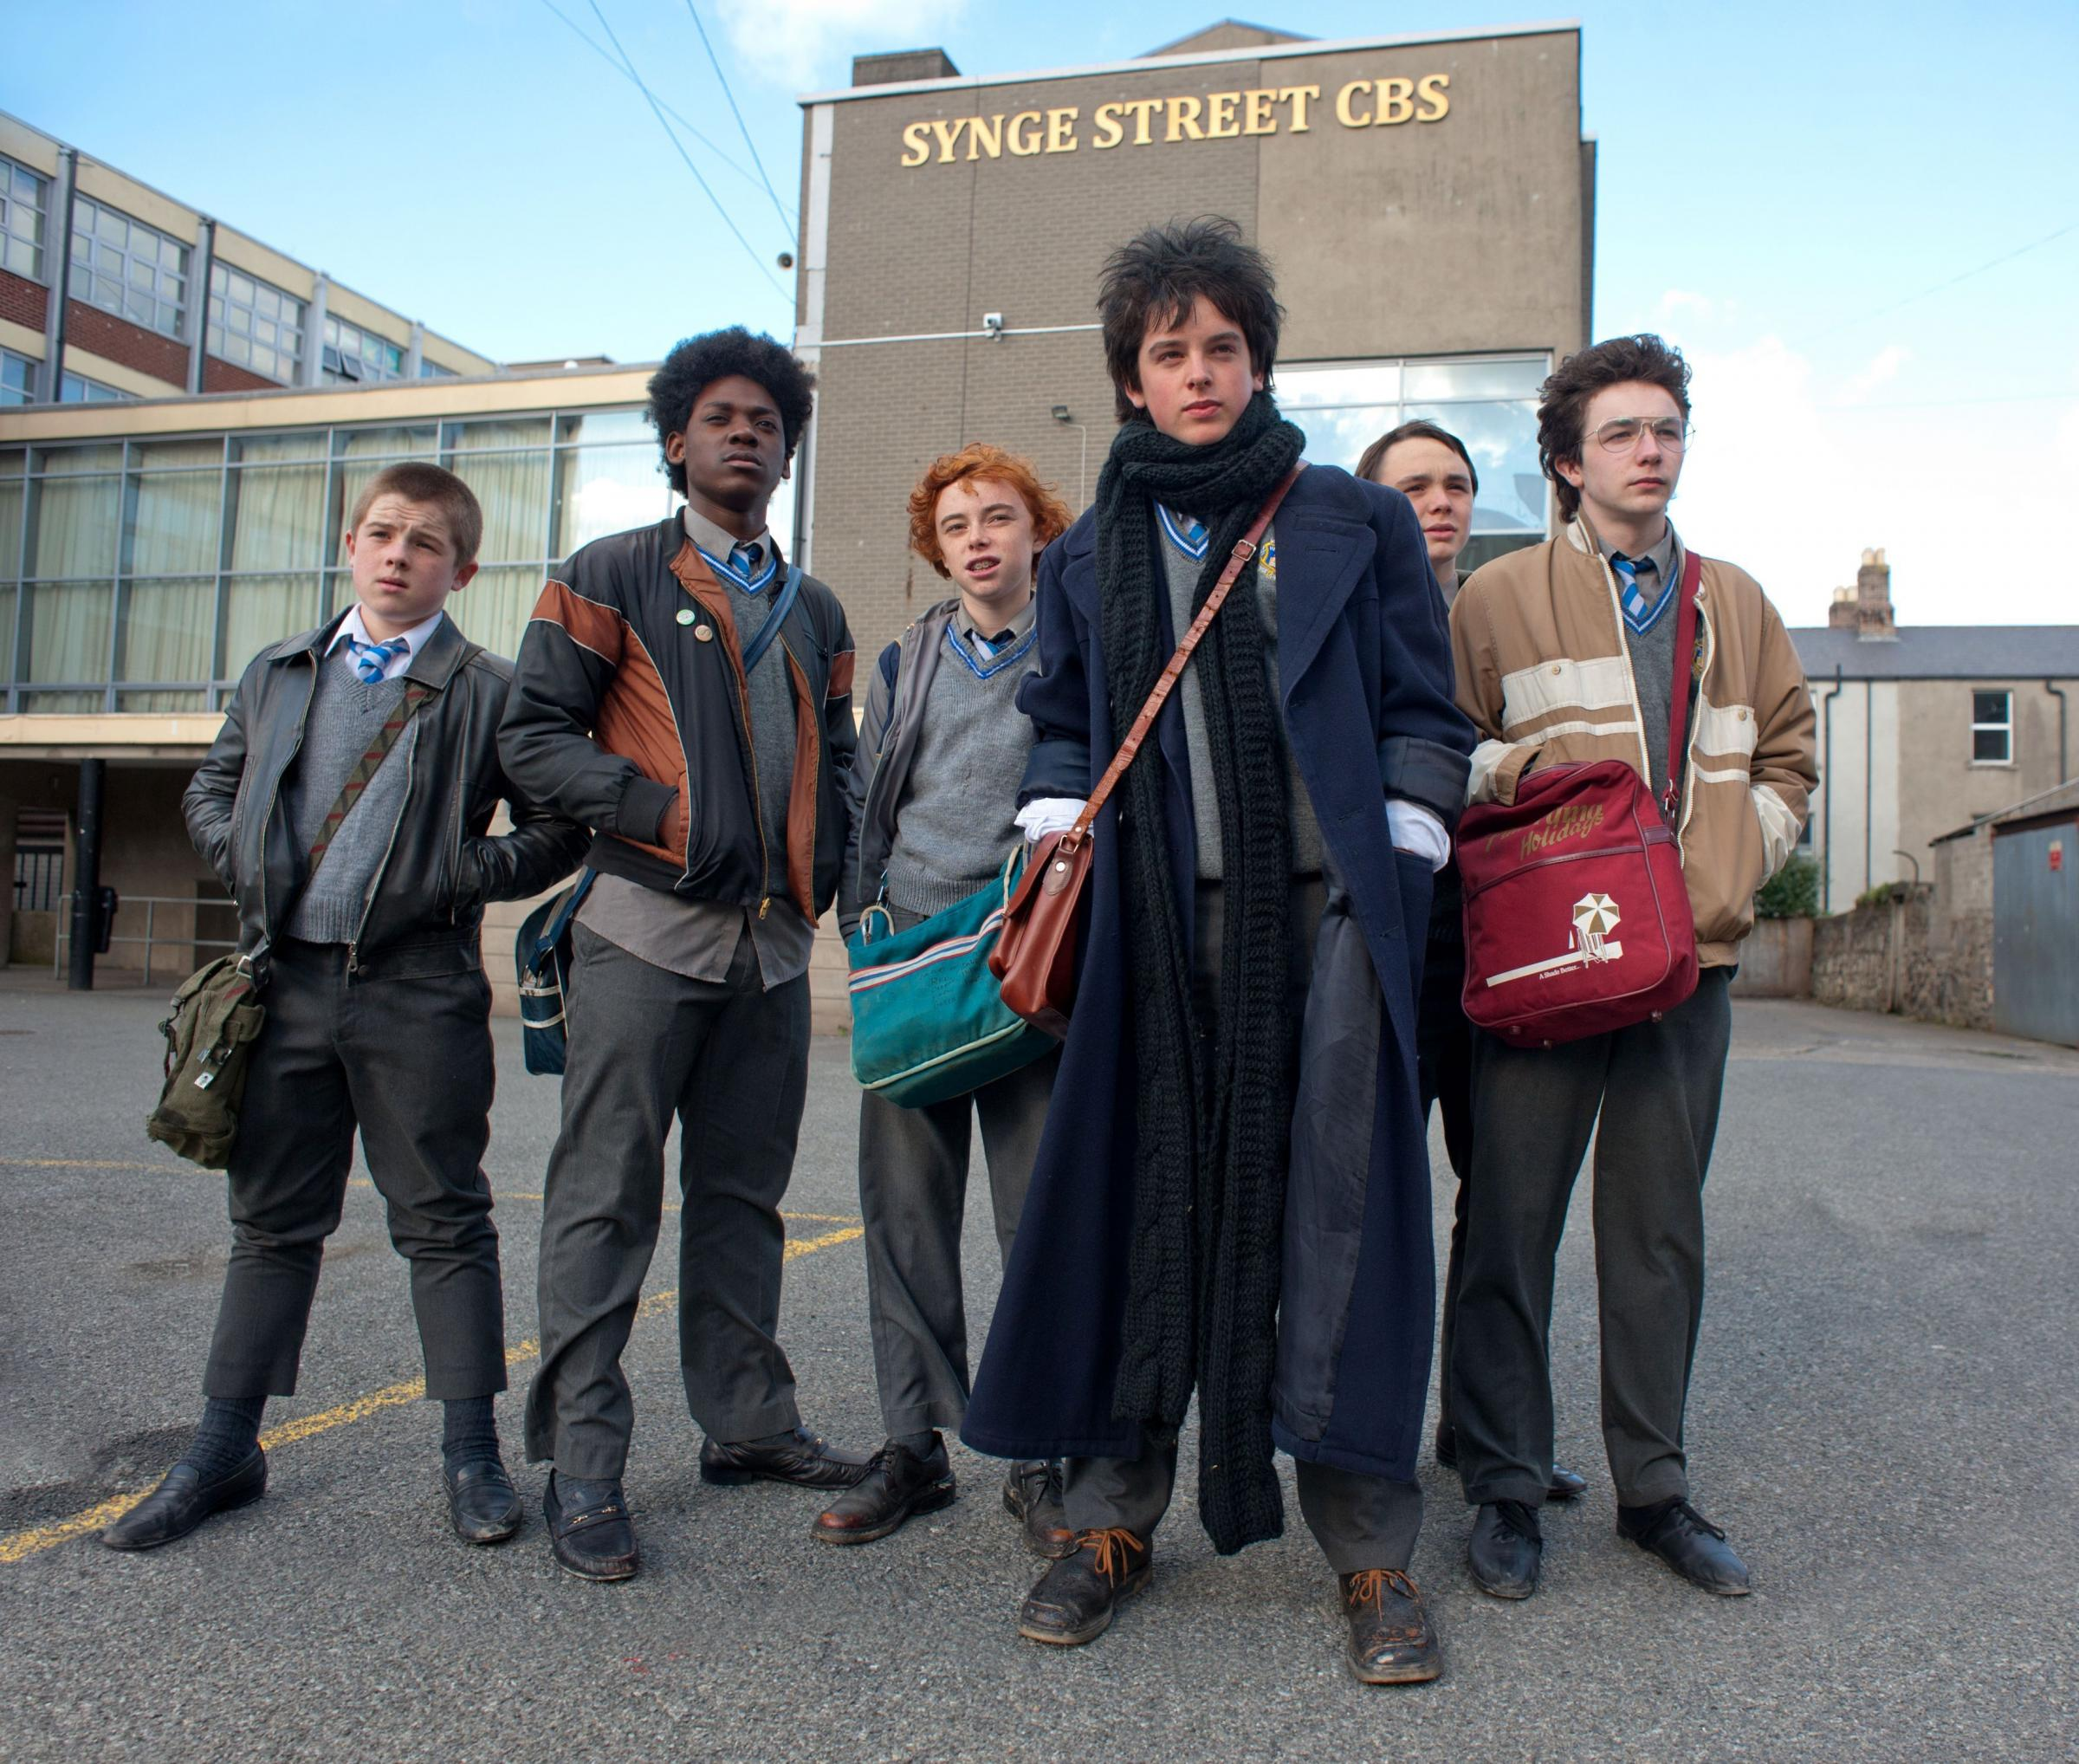 SINGING A HAPPY SONG: the boys from Sing Street.